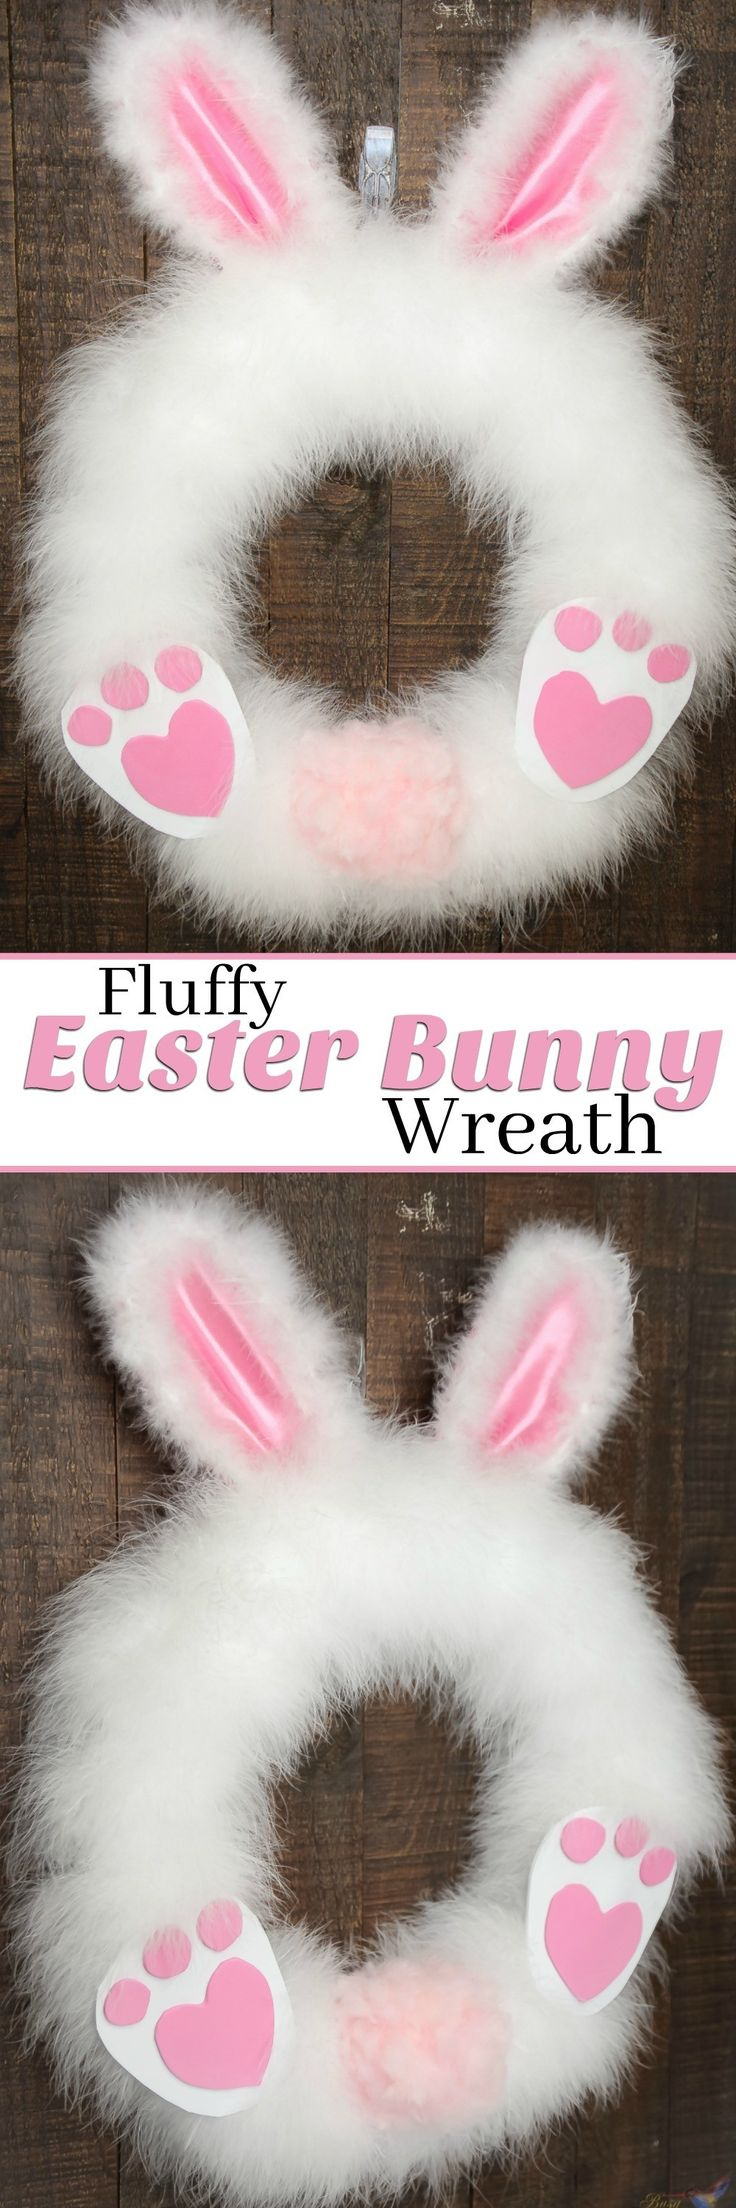 This DIY Fluffy Easter Bunny wreath craft project is so adorable and simple! Our tutorial is so easy that you can make this Easter Wreath in 30 minutes or less. And it's so fun that kids and adults alike can have fun while still looking amazing for your front porch! It's the perfect Easter Craft for a limited budget and time. Follow us for more Easter Decorating Ideas.  via @2creatememories